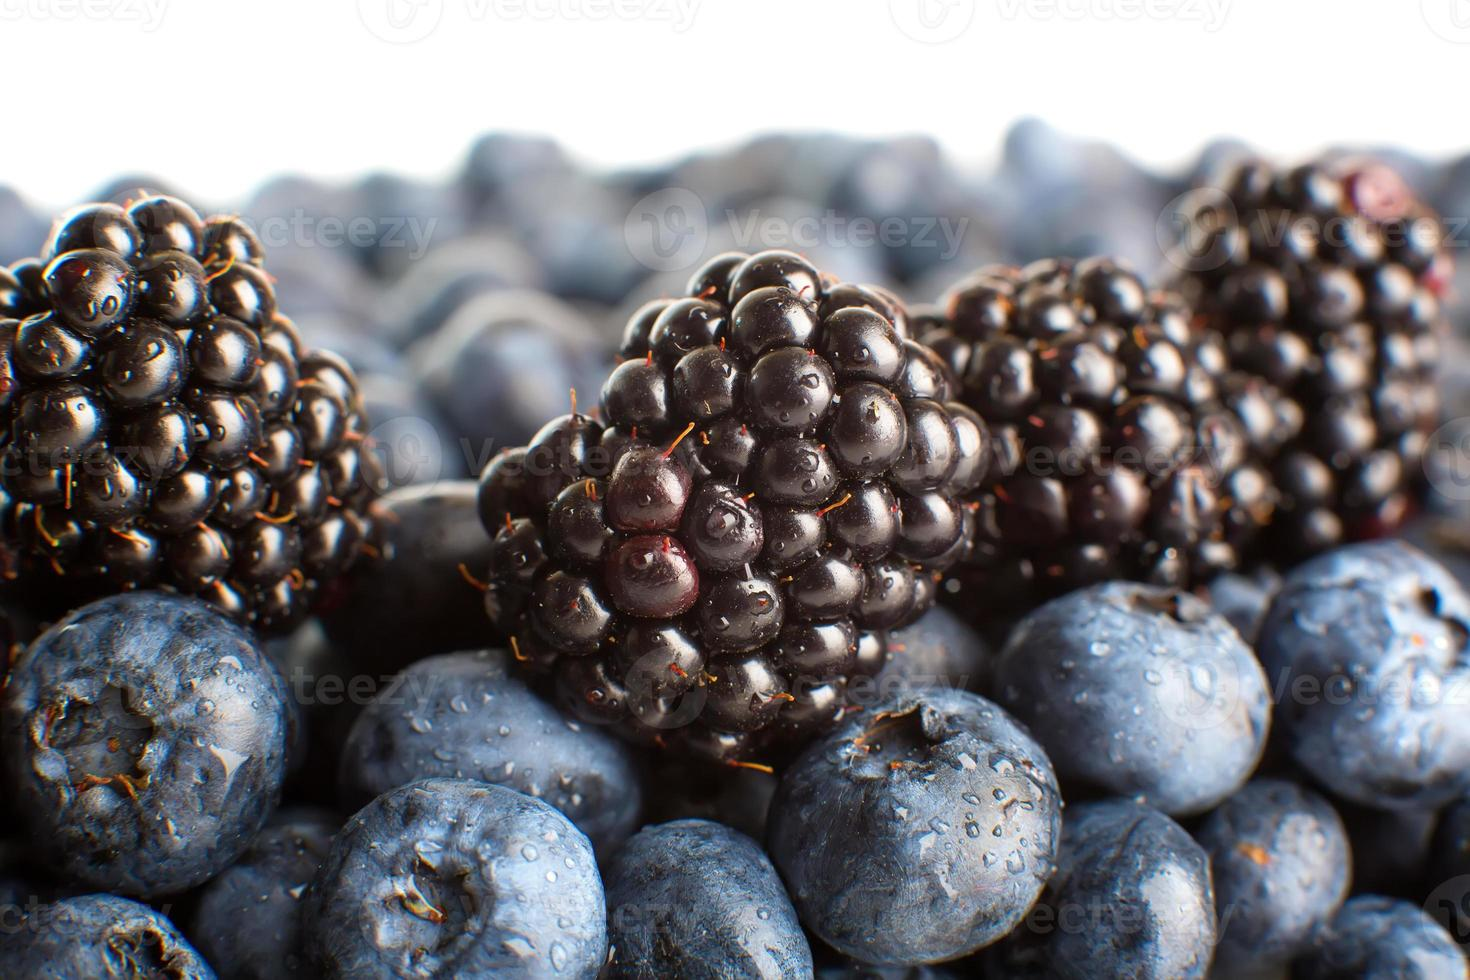 Freshly picked blueberries and blackberries close-up photo